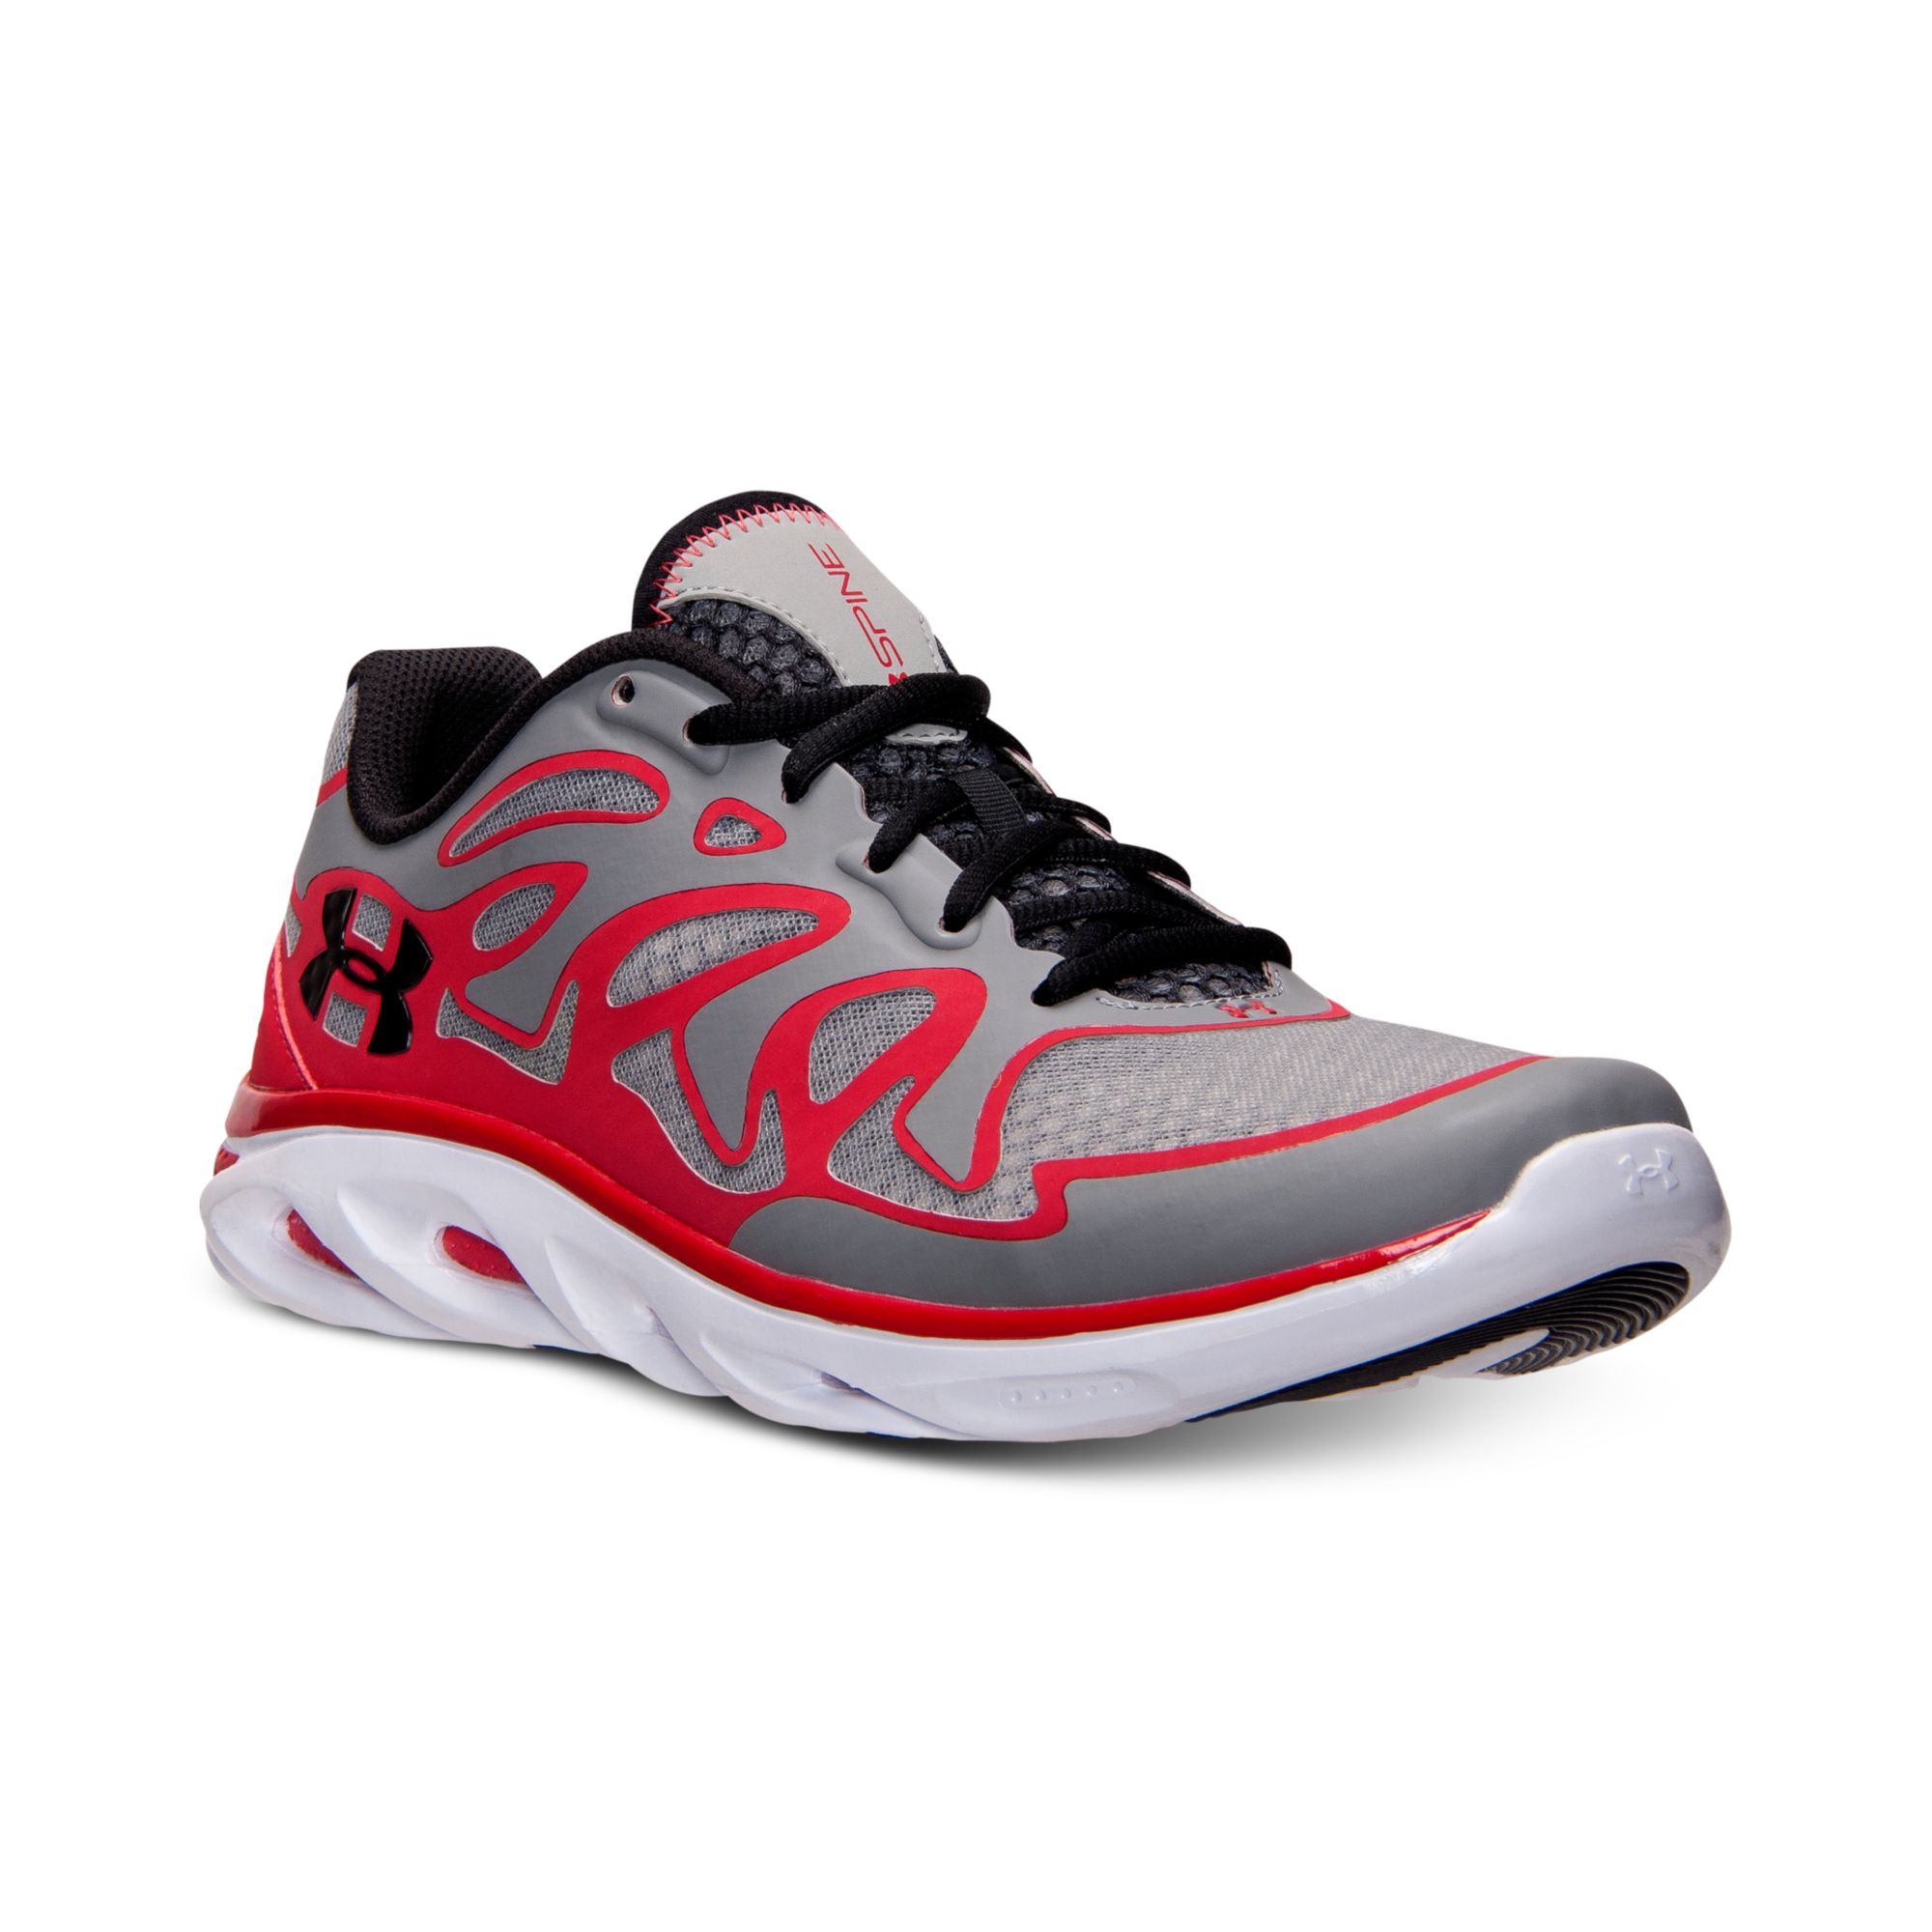 Under Armour Mens Spine Evo Running Sneakers From Finish